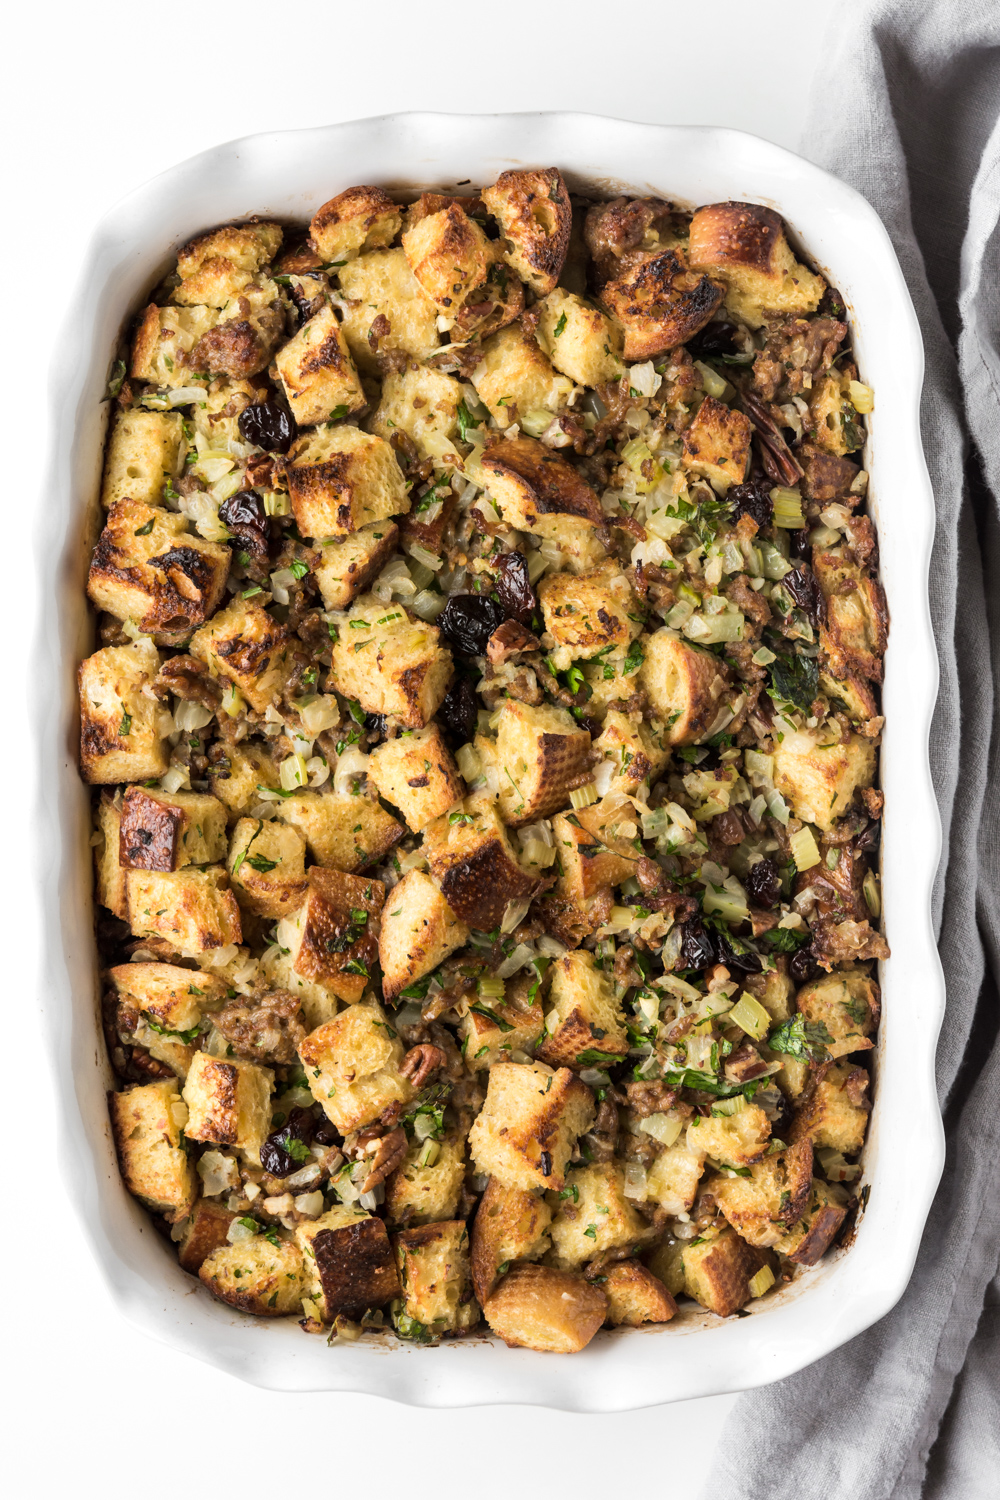 sourdough, sausage and sour cherry stuffing